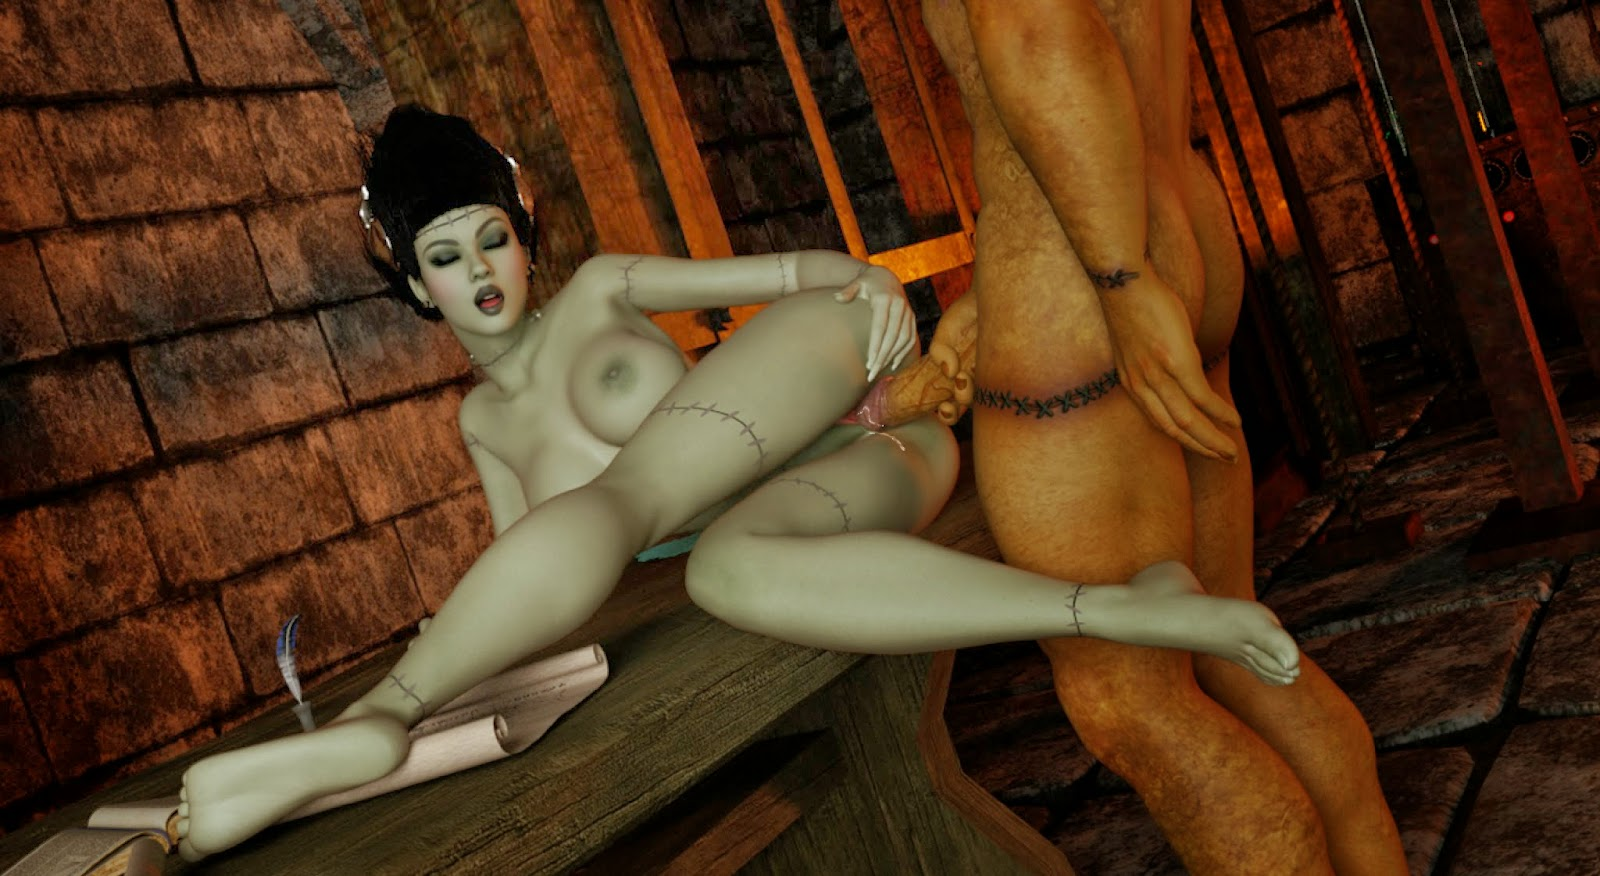 3d sex villa addons naked gallery